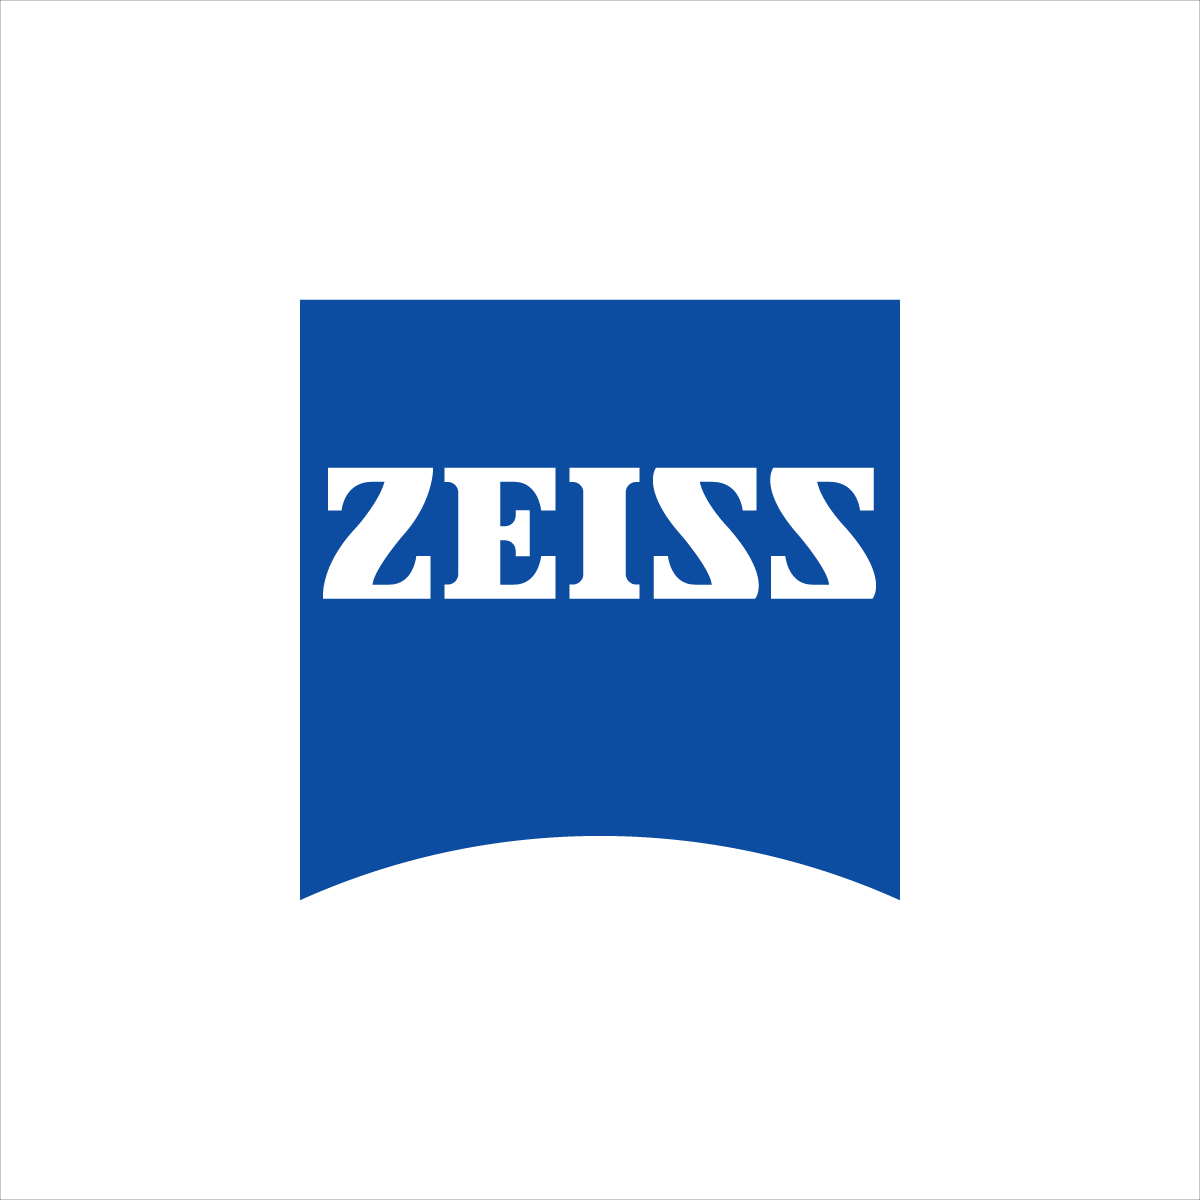 Carl Zeiss ltd